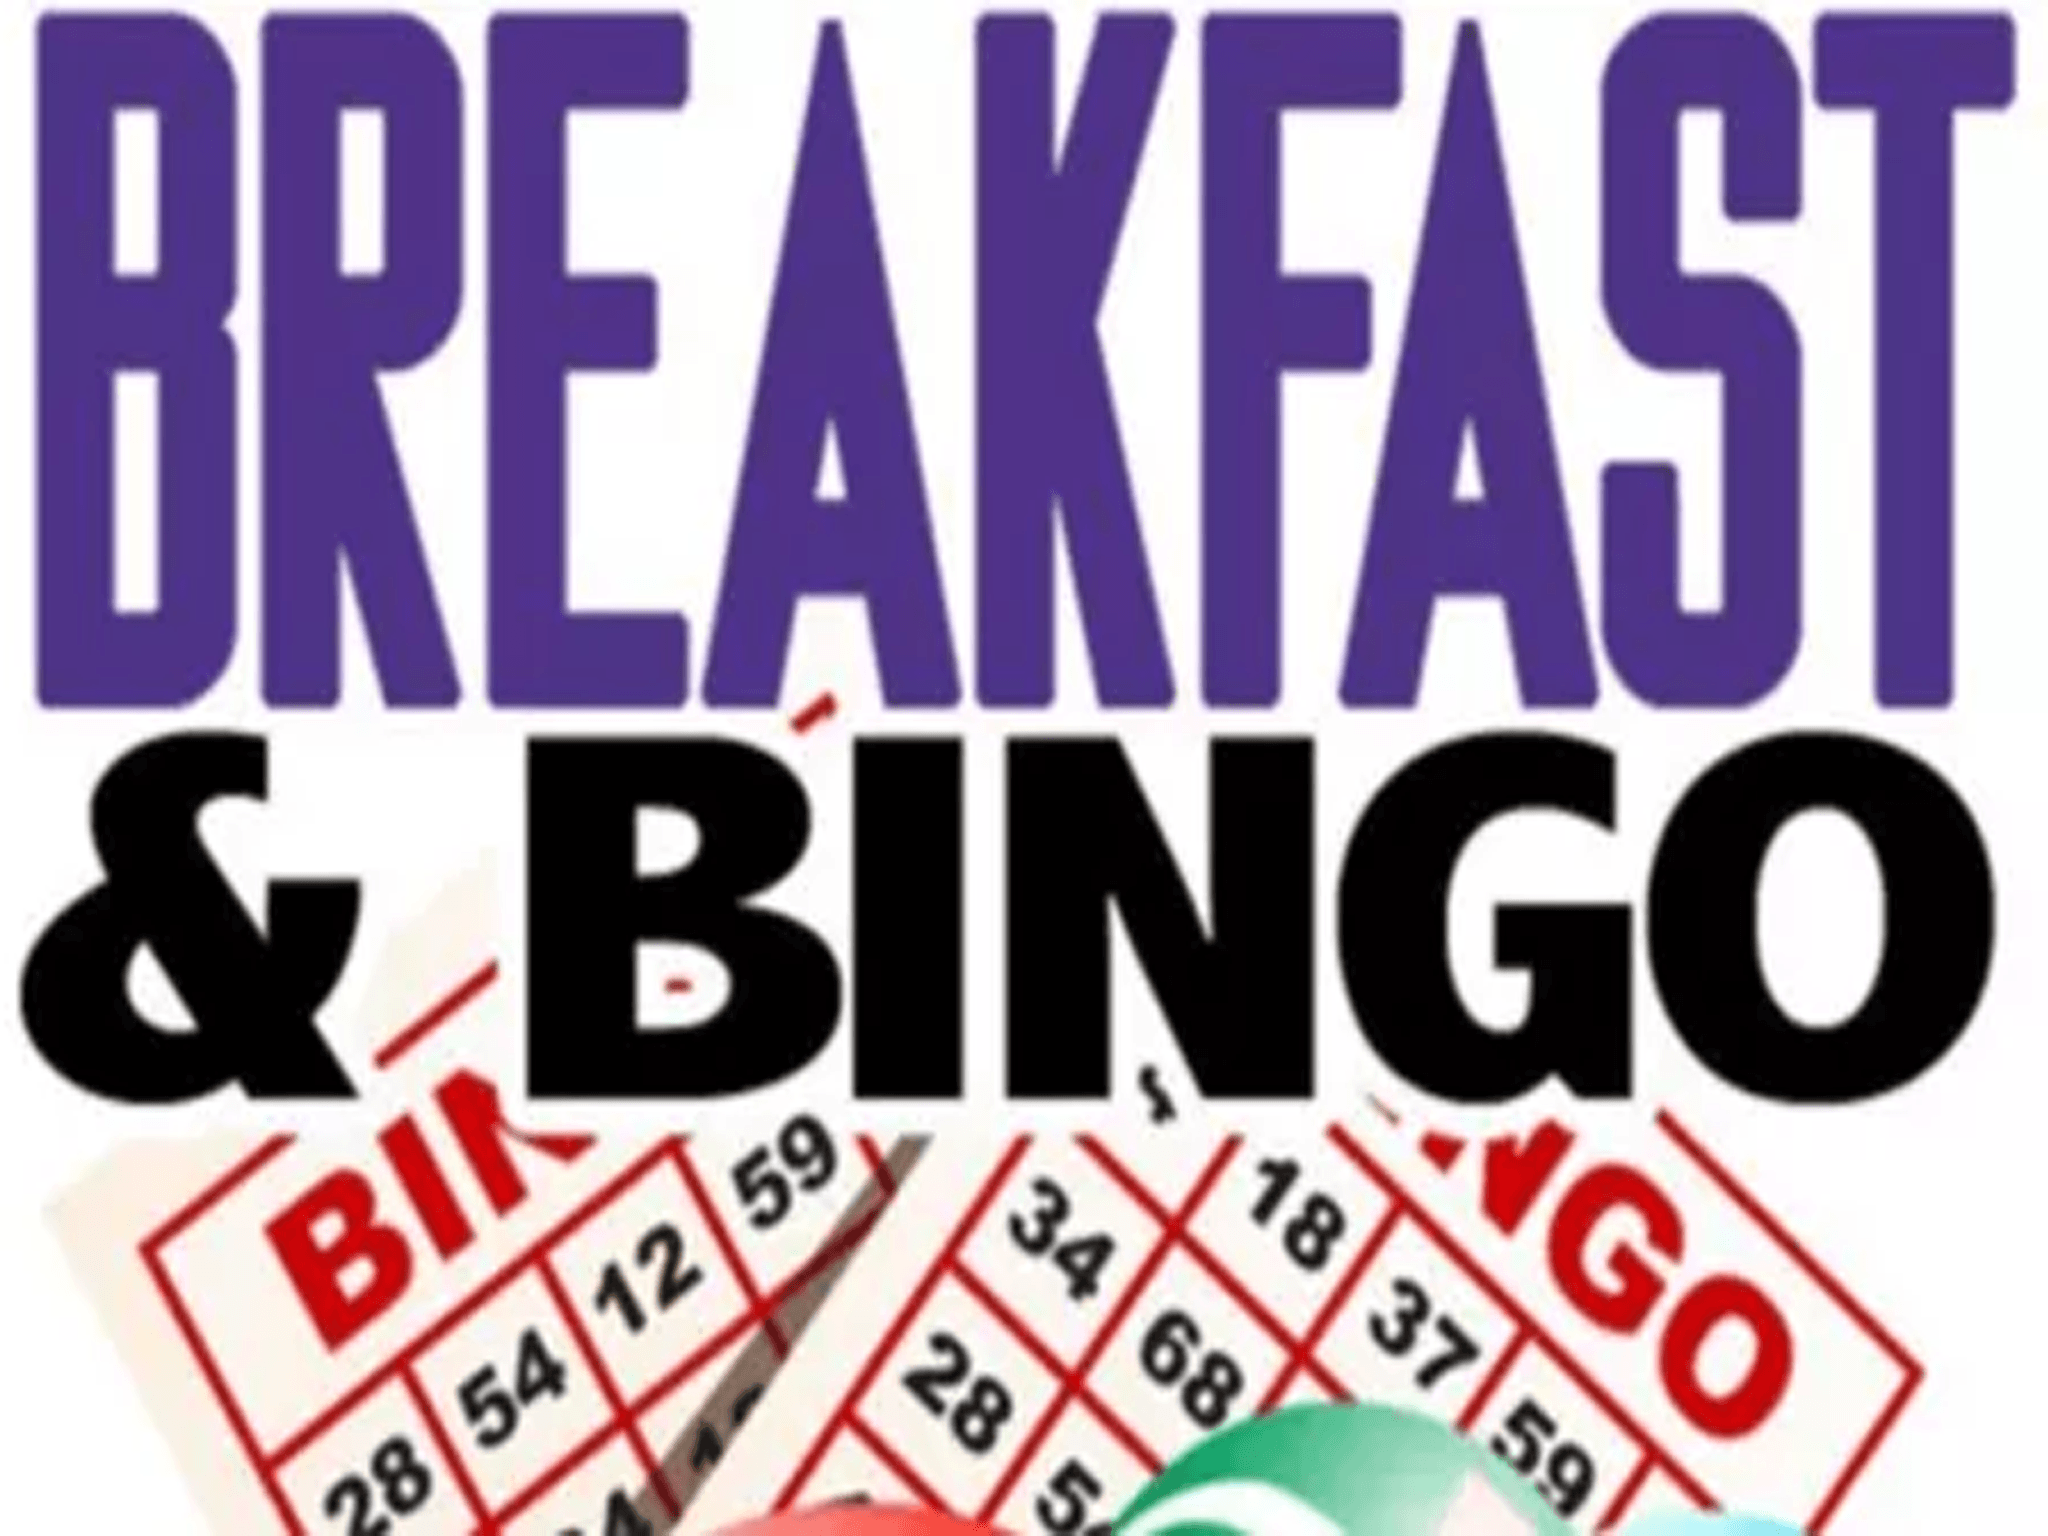 BreakfastBingoGraphic